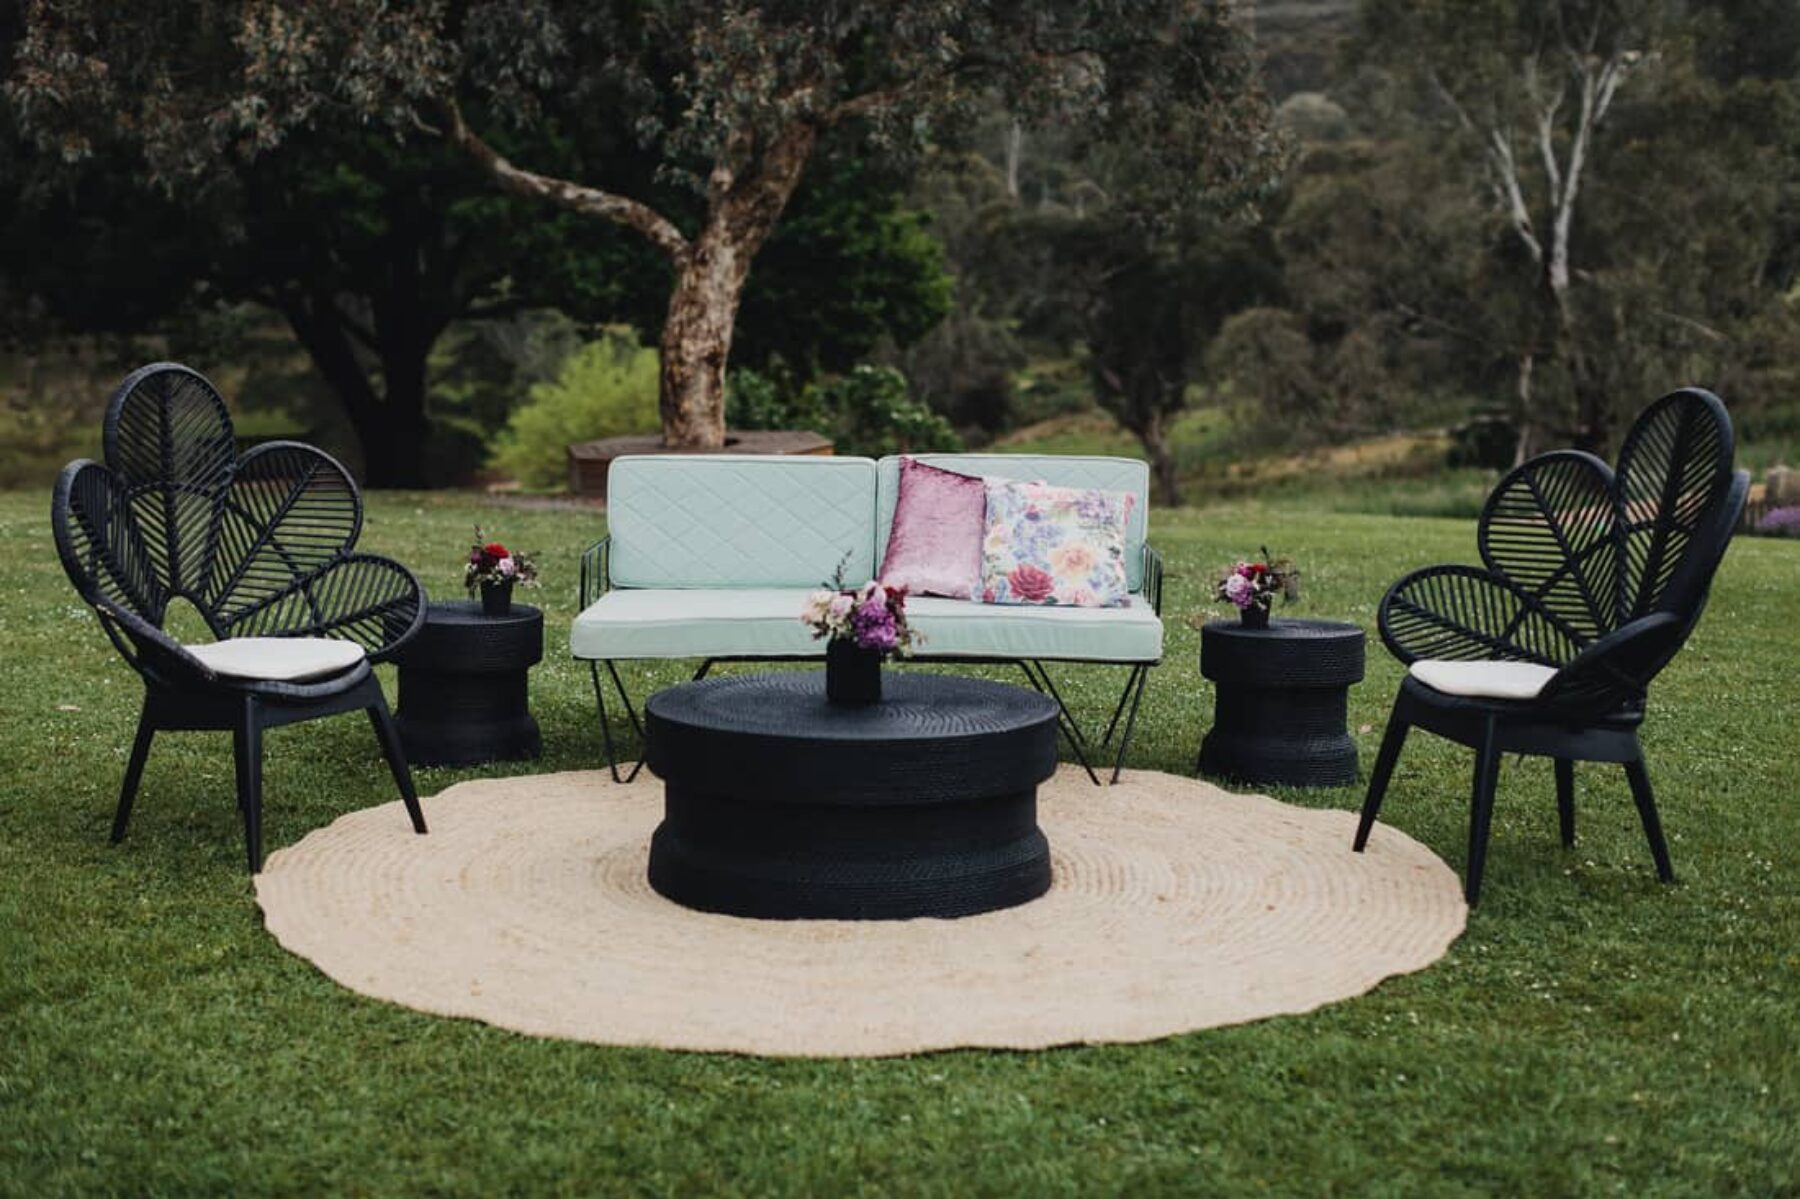 lawn lounge setup with black peacock chairs